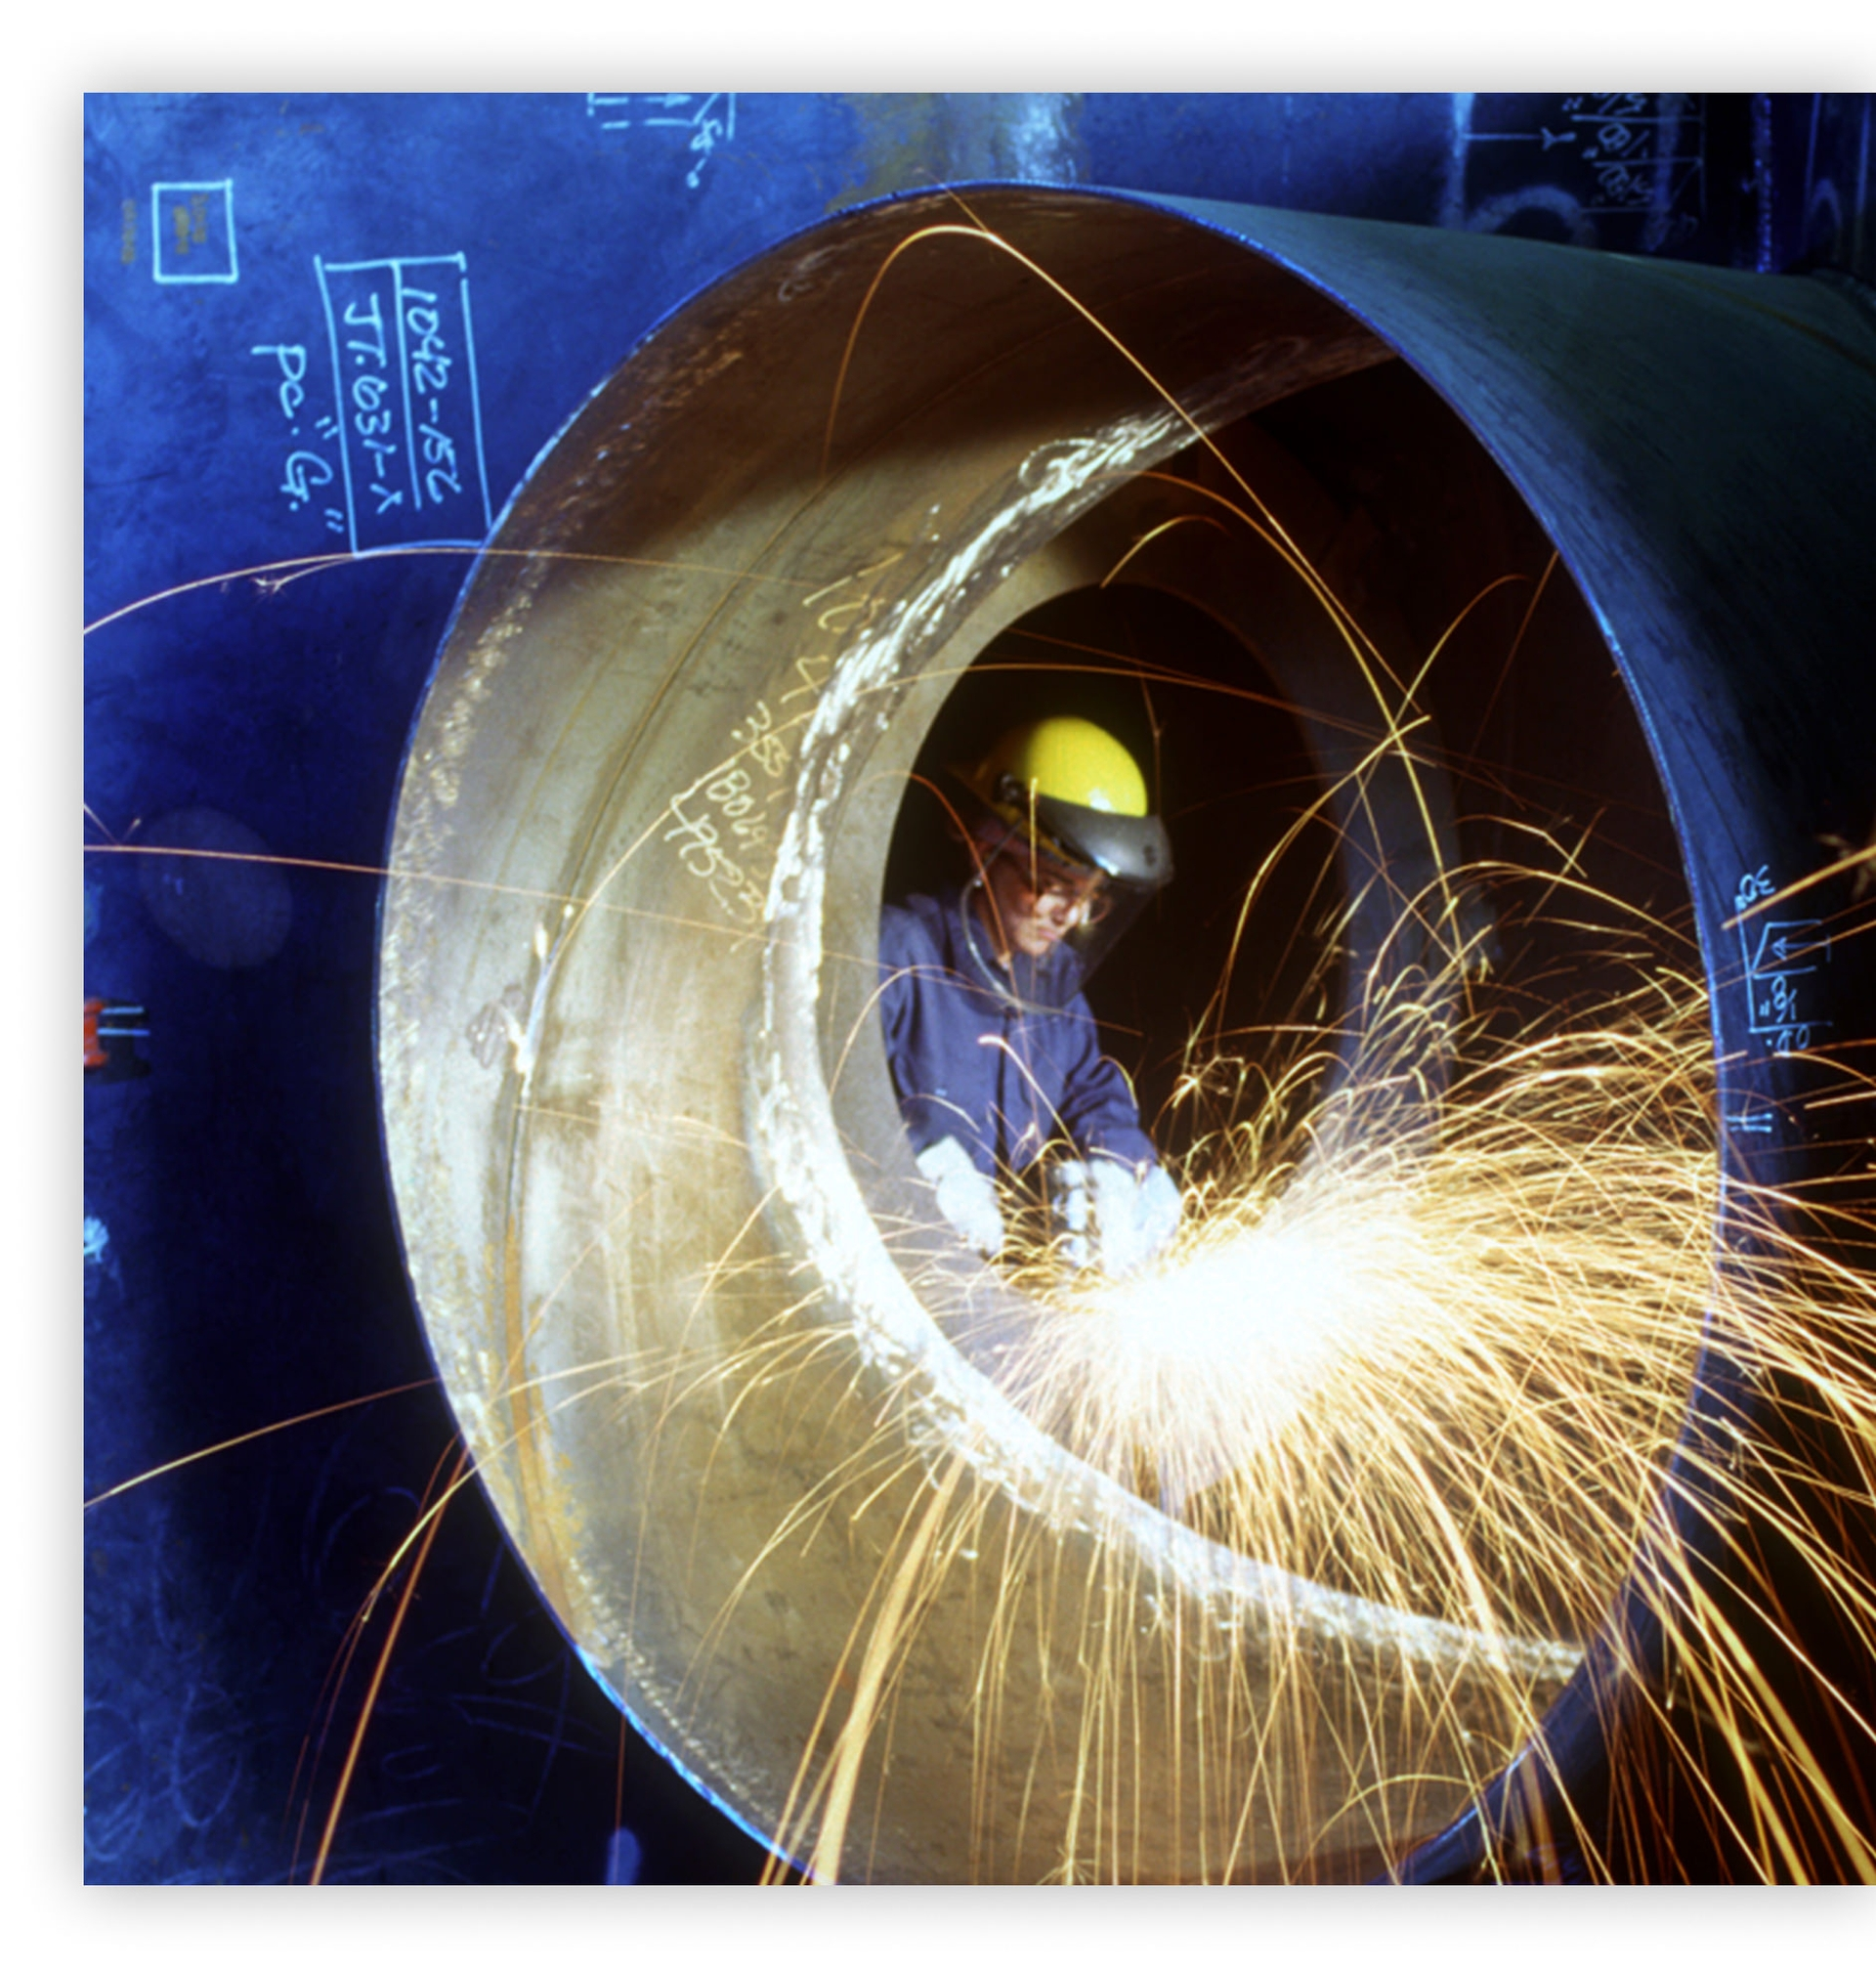 Woman welding on a mechanical project for commercial projects